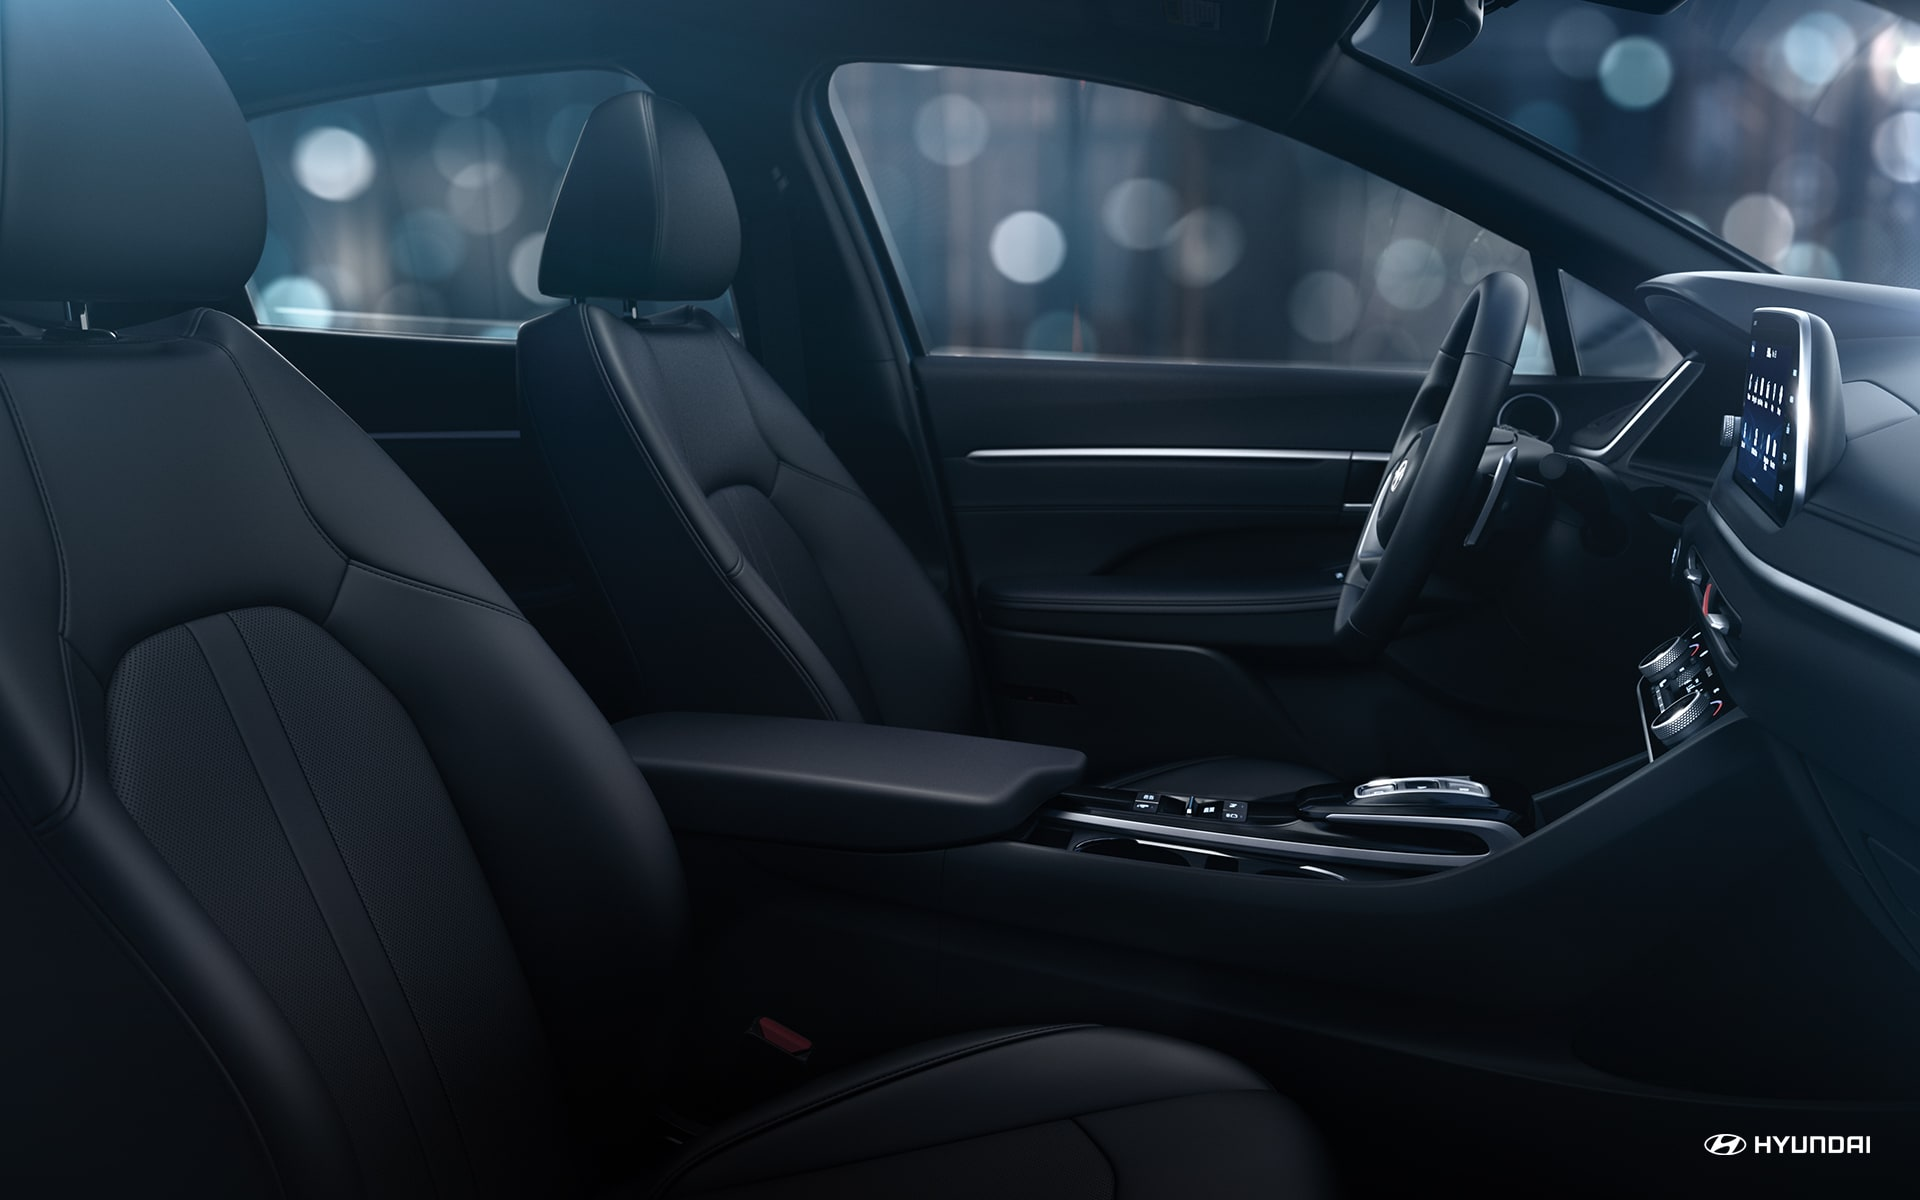 2020 Hyundai Sonata Technology